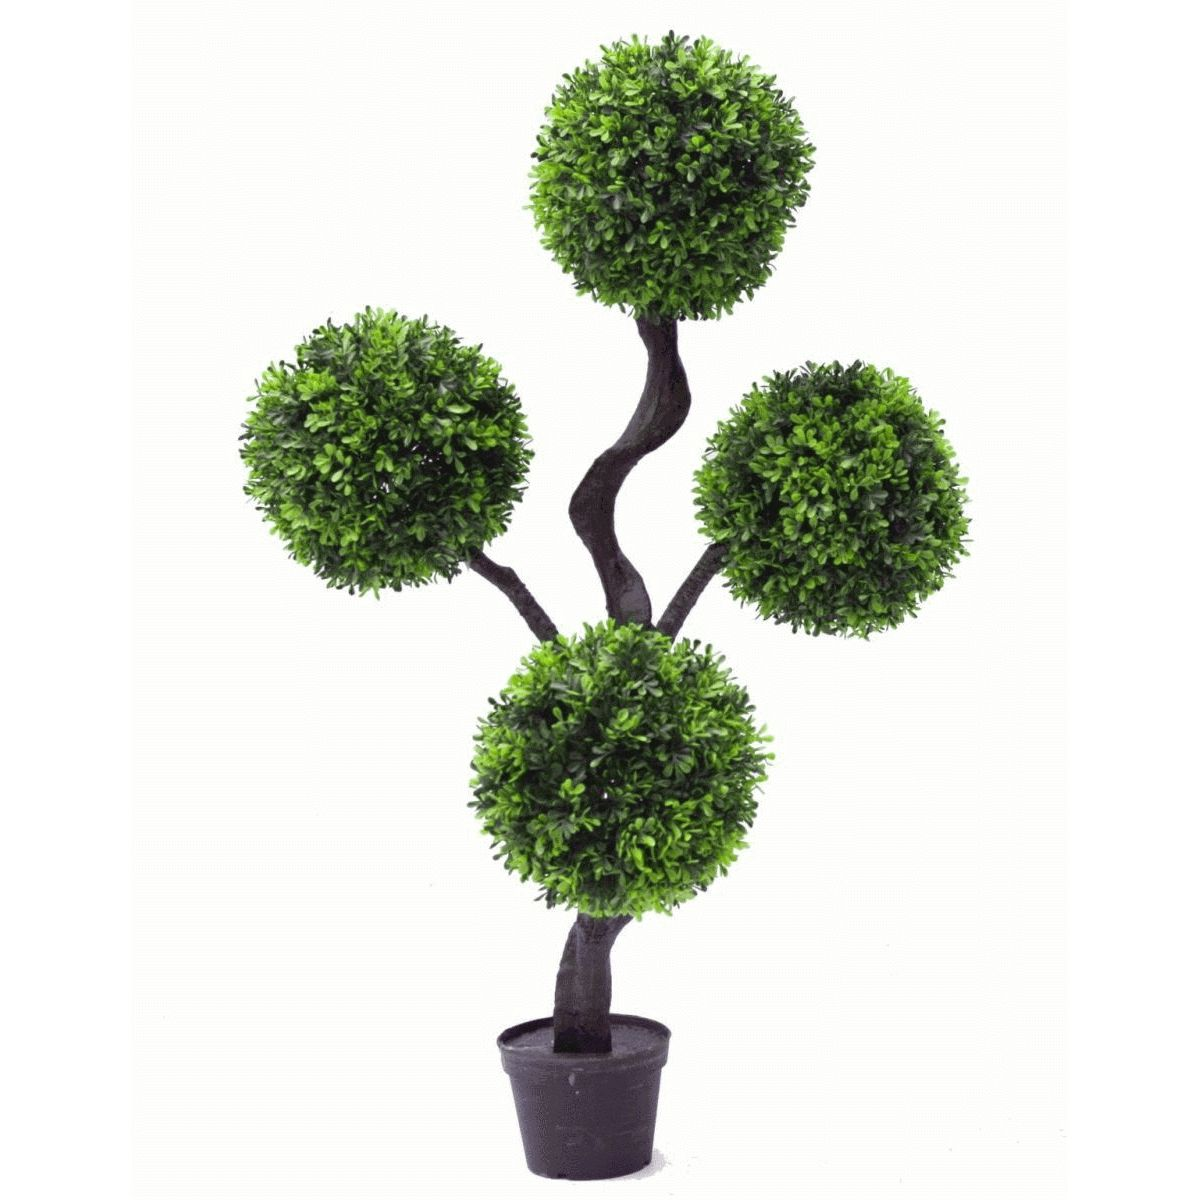 90cm 3ft Large Artificial Plant Boxwood Realistic Topiary Tree 4 Ball